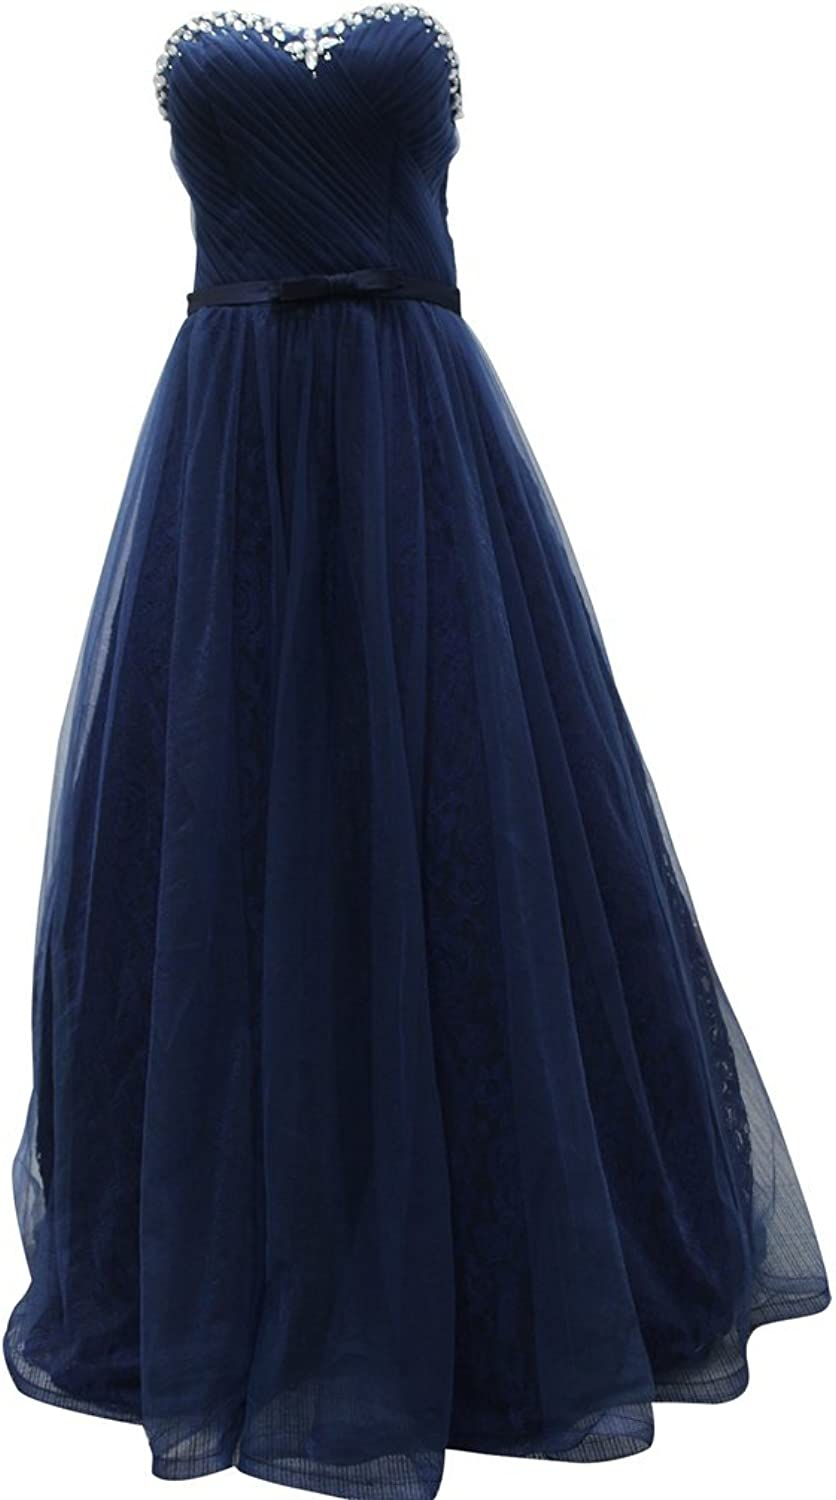 Drasawee Women's Strapless Bride Lace Wedding Dress Evening Gowns Navy bluee US12